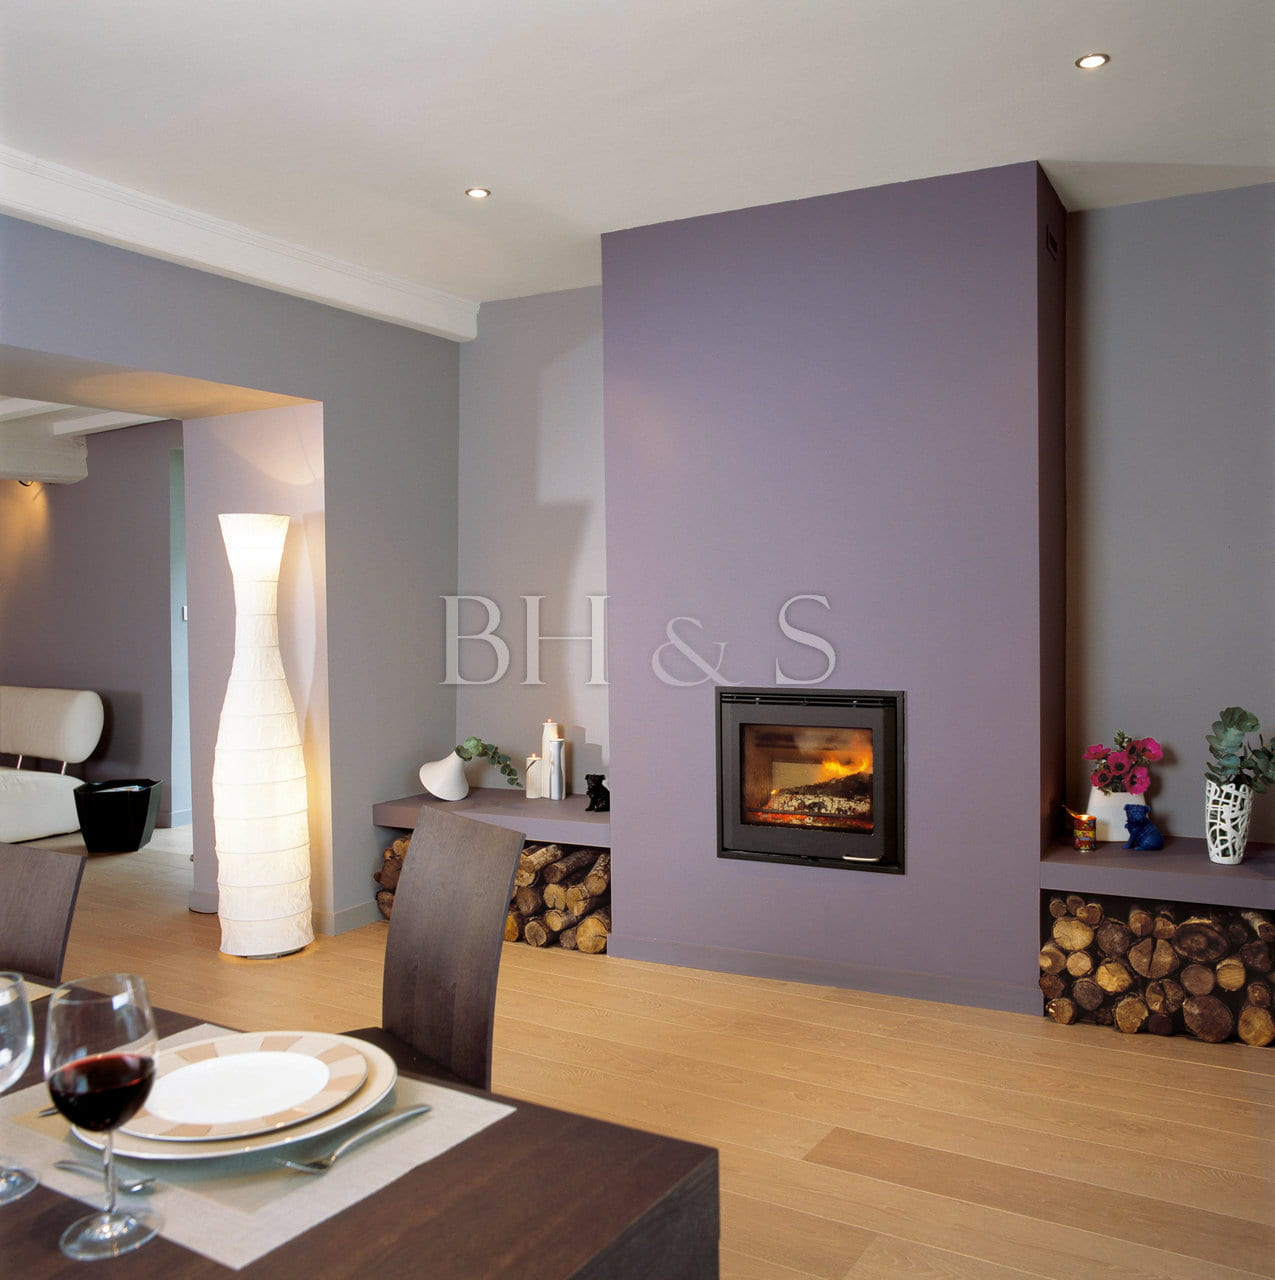 LAYOUT AND DECORATION - LIVING ROOM - CREATION OF FIREPLACE - PARQUET FLOOR - ROOM DESIGN